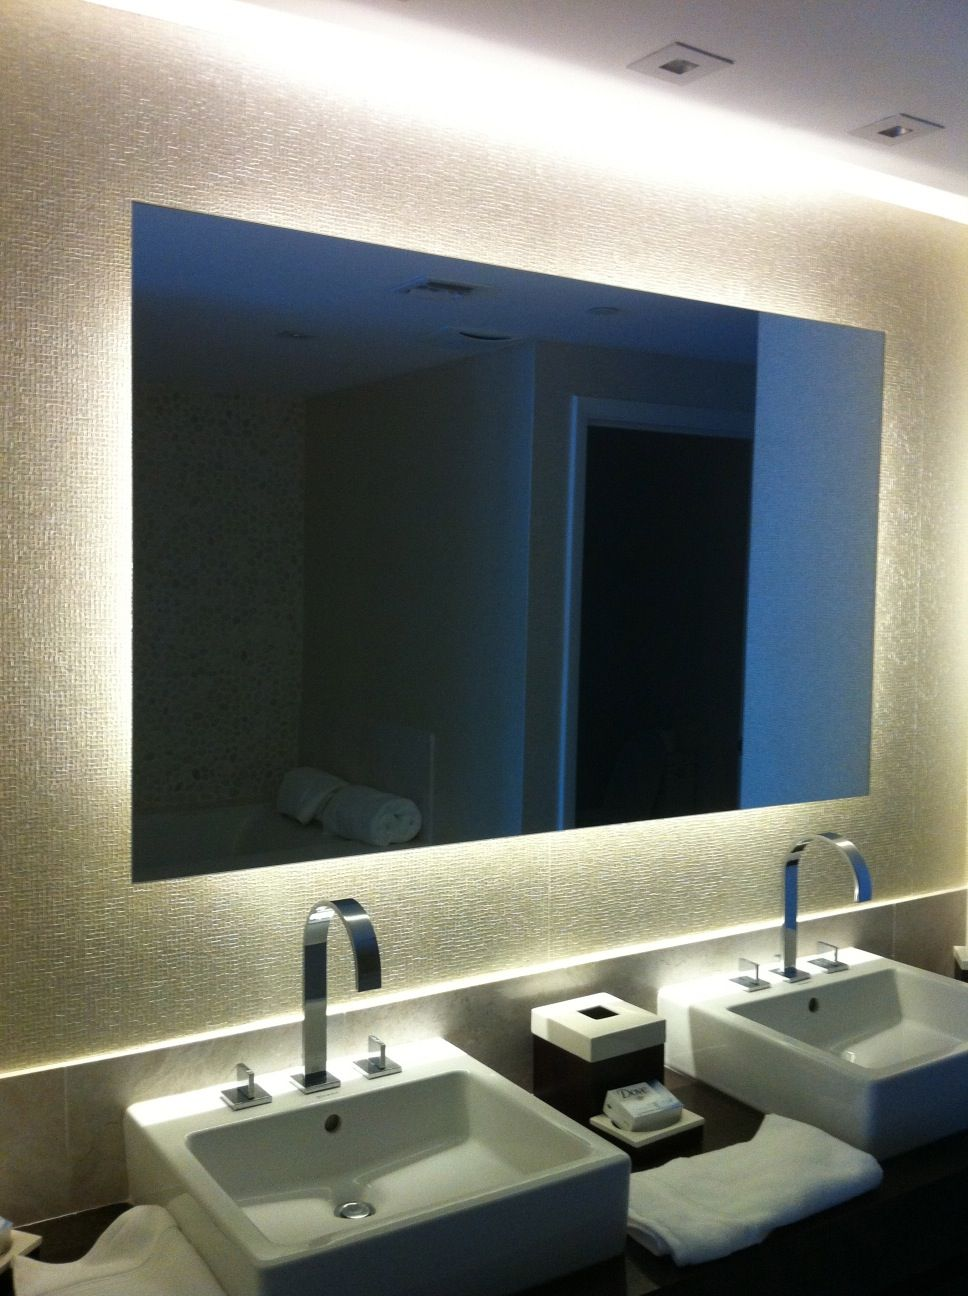 Floating Mirror   Google Search Led Mirror, Water Garden, Bathroom Designs,  Project Ideas